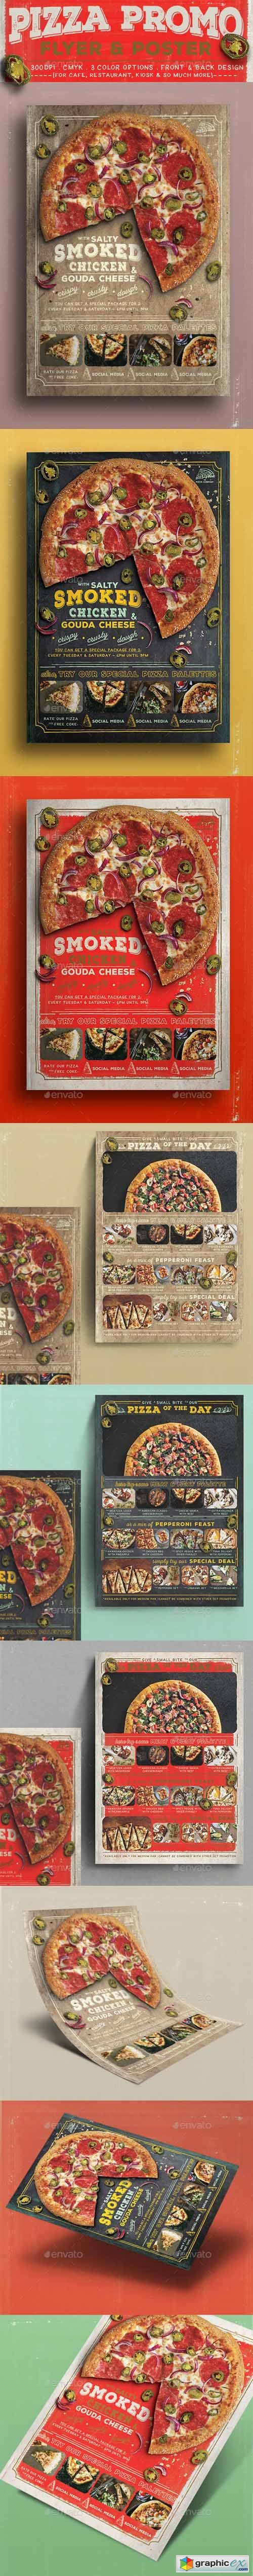 Pizza Promo Flyer